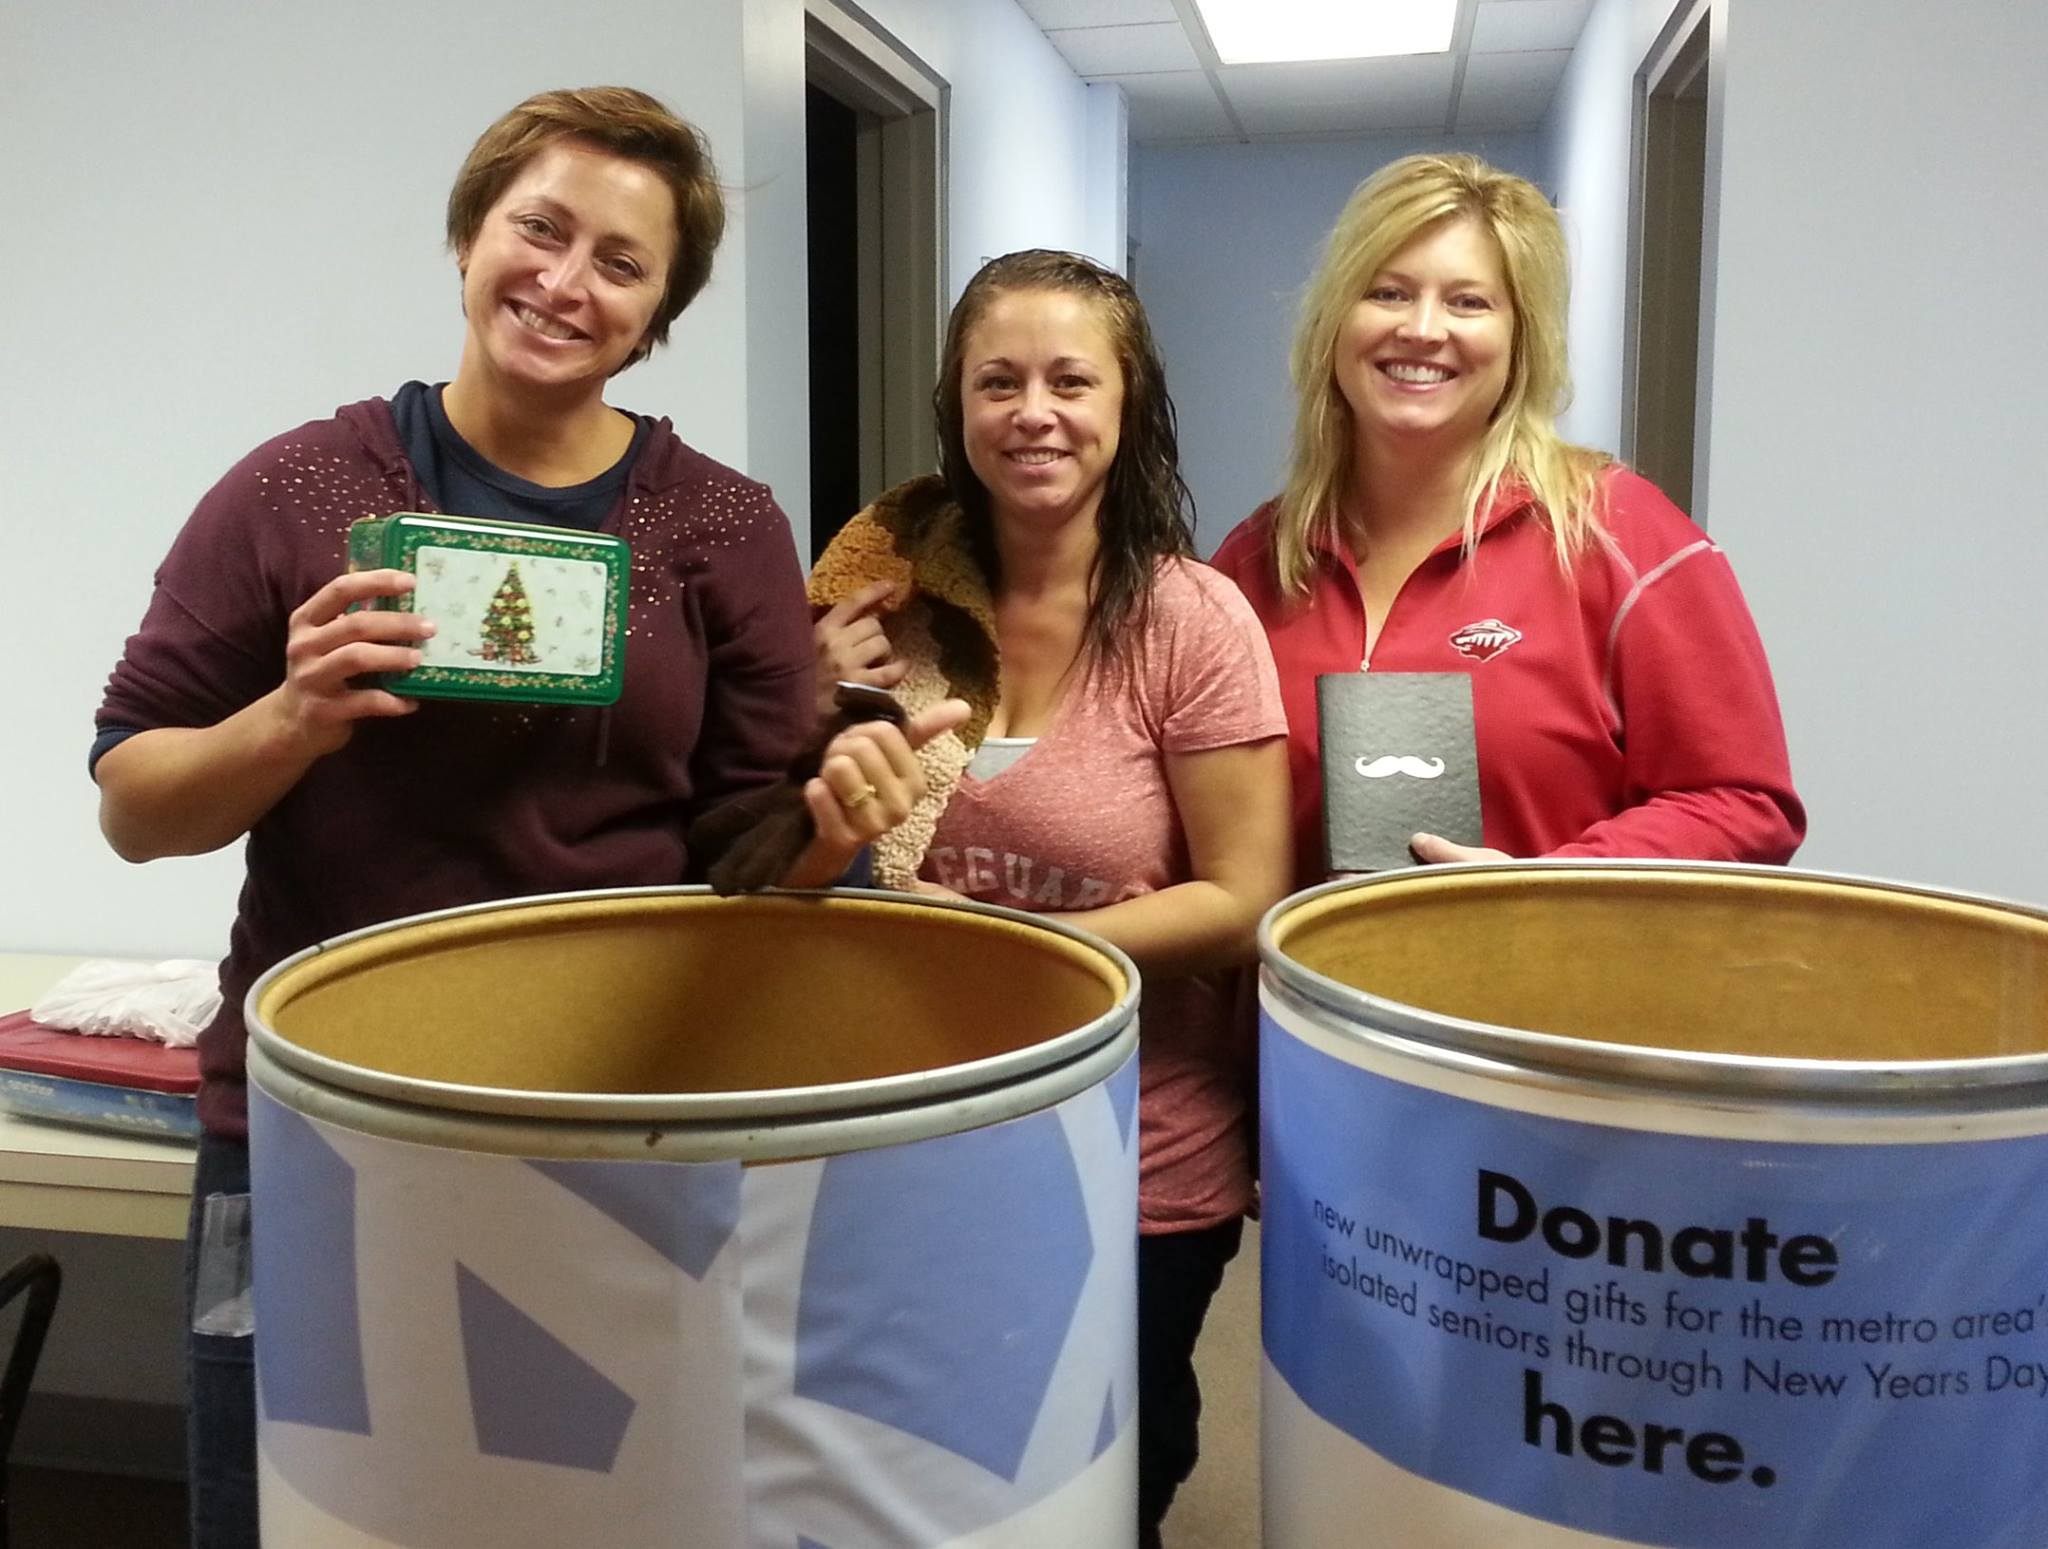 Donors fill Gifts for Seniors barrels with gifts to brighten the holiday season for local seniors.